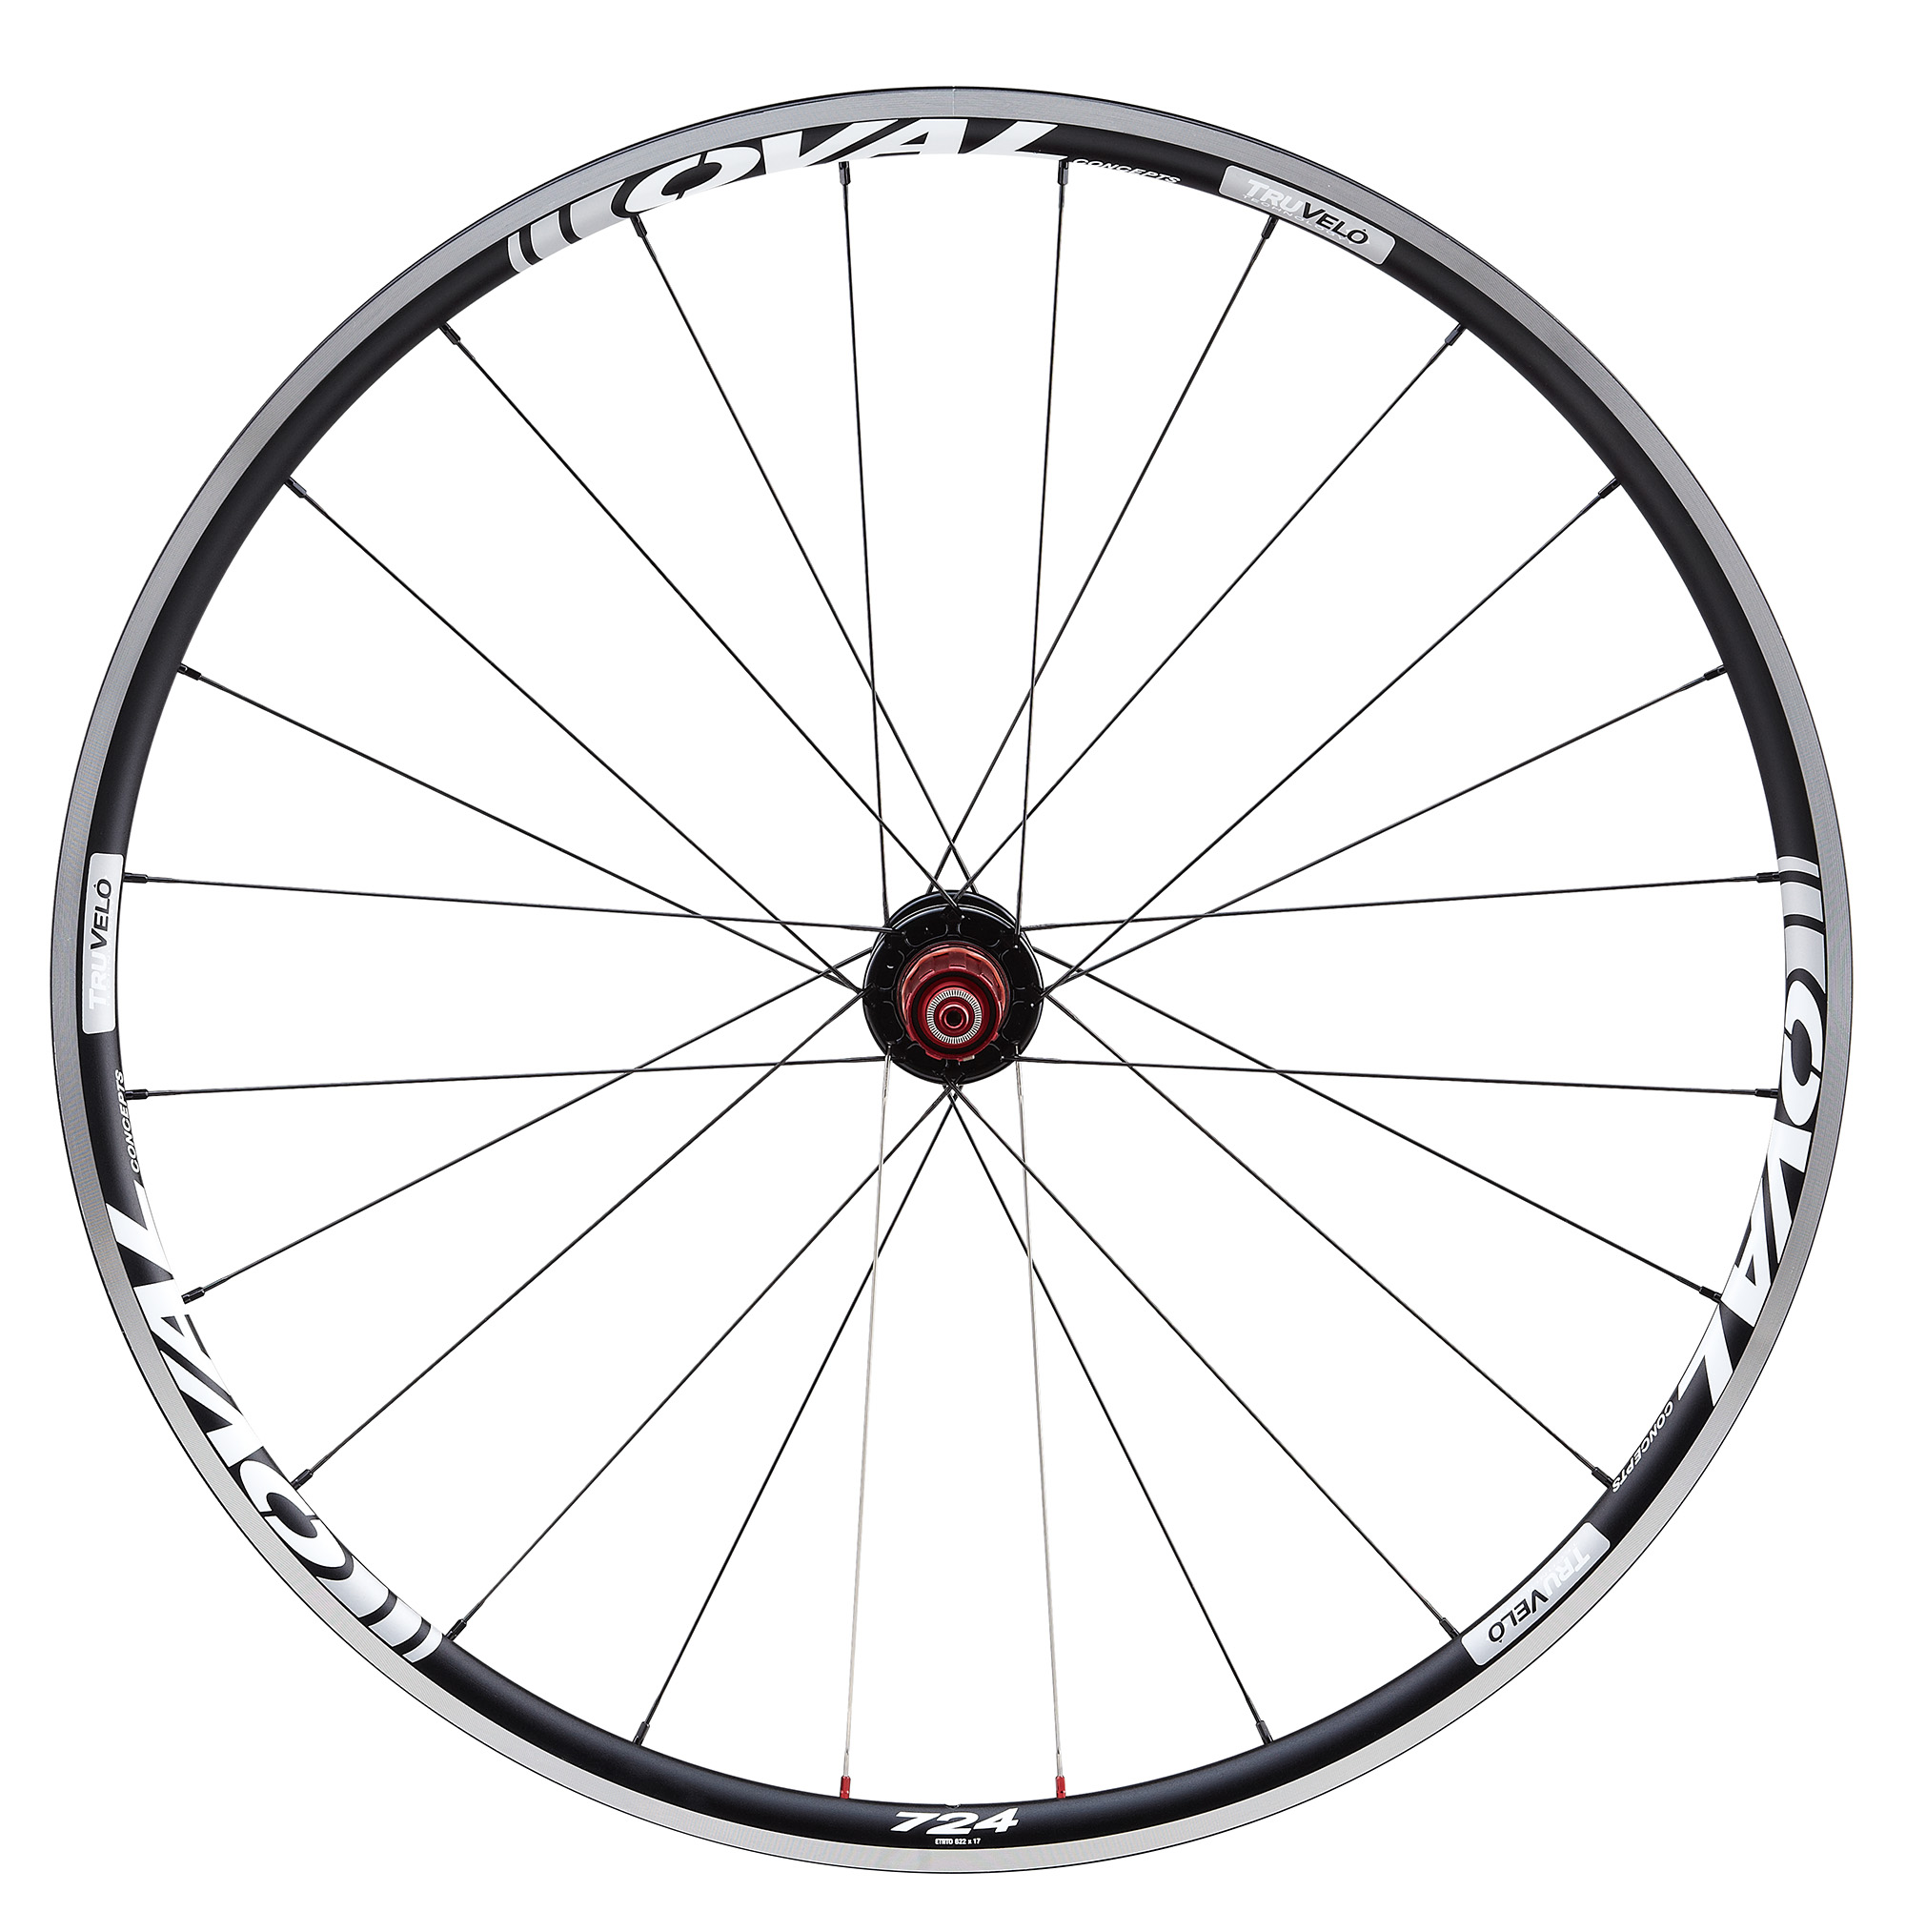 Asi S Oval Concepts Renews Wheel Technology Agreement With Truvelo Design Bicycle Retailer And Industry News